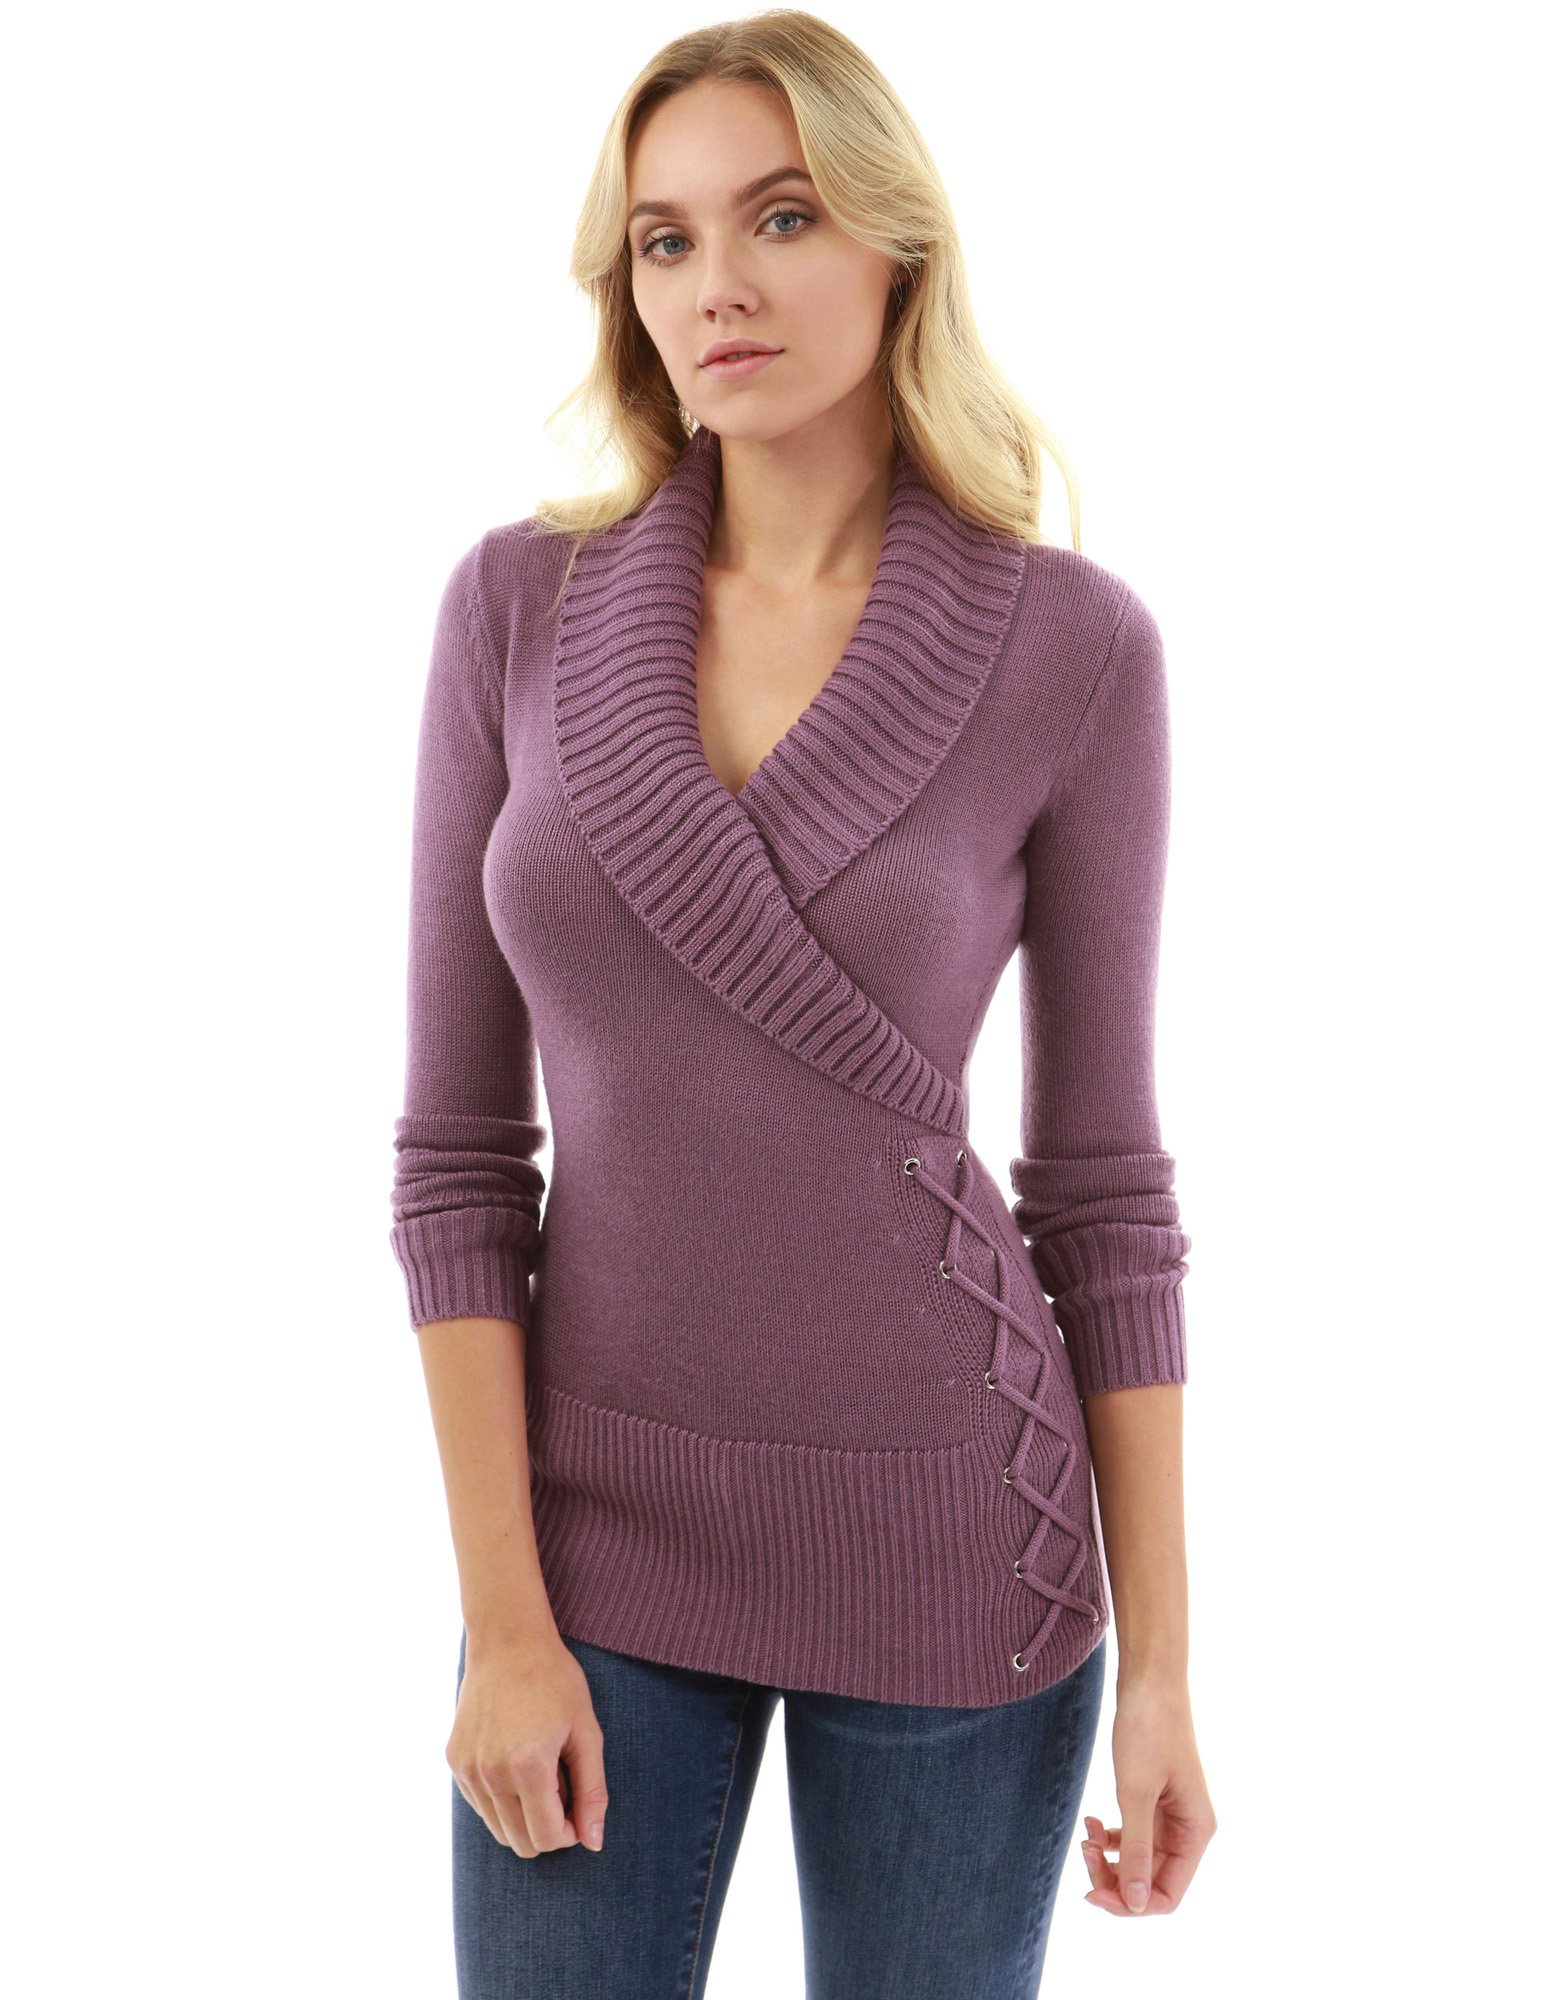 308e167811c Best Rated in Women s Sweaters   Helpful Customer Reviews - Amazon.com